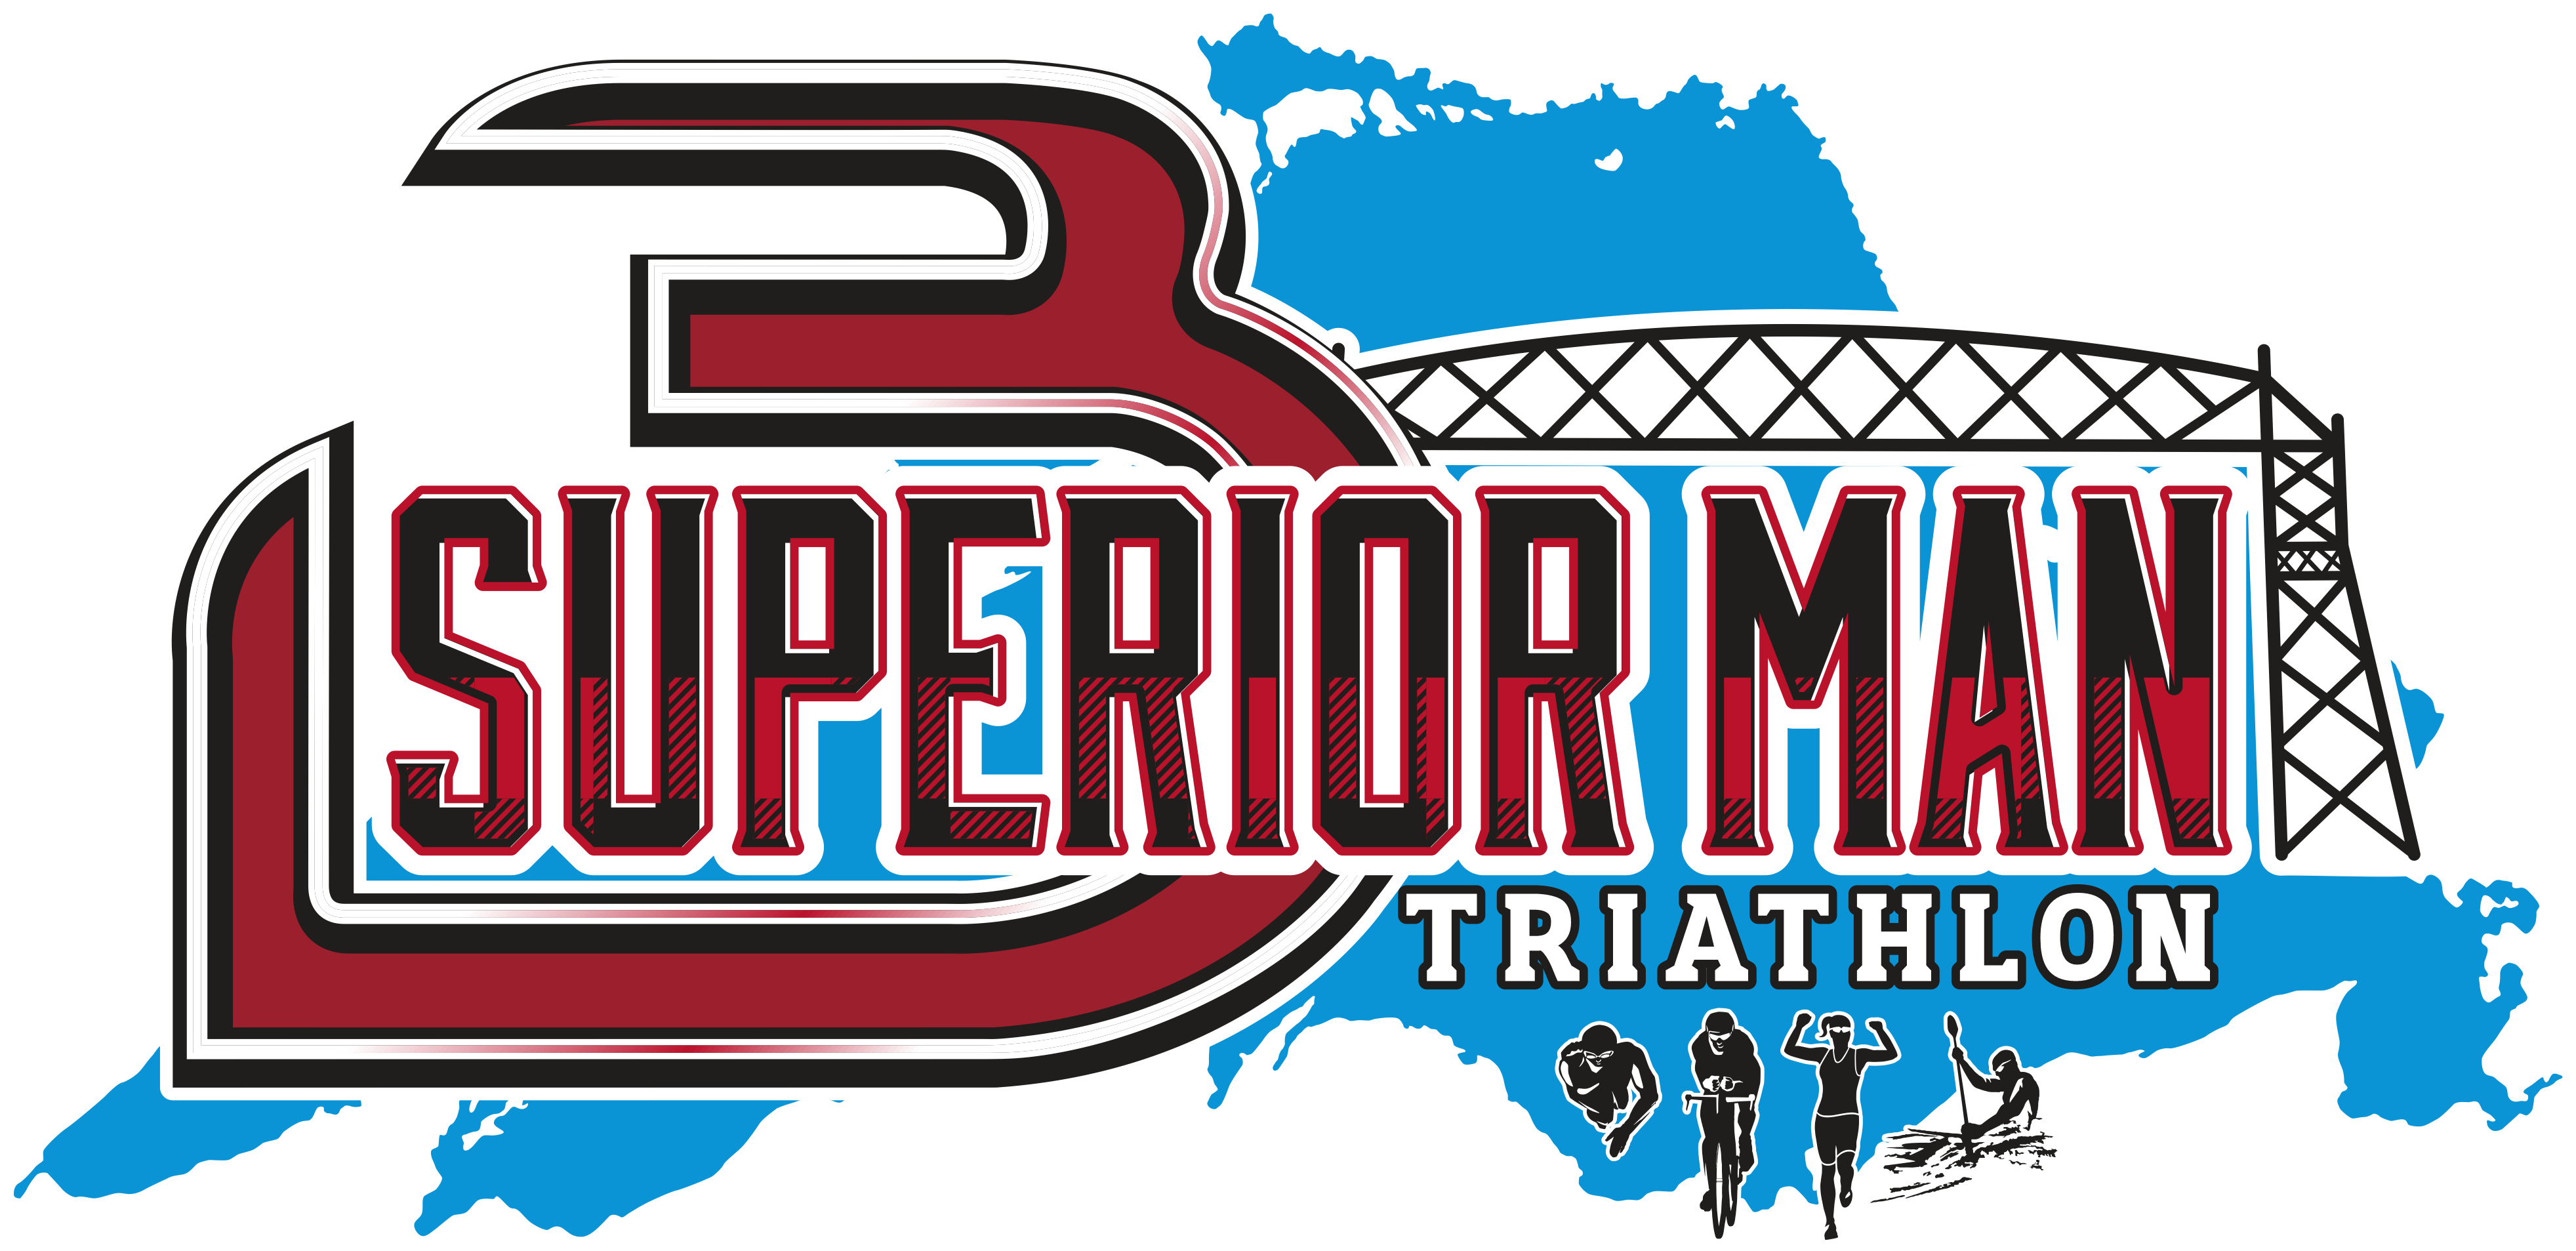 3-Disciplines-Superior-Man-1 Athlete Information